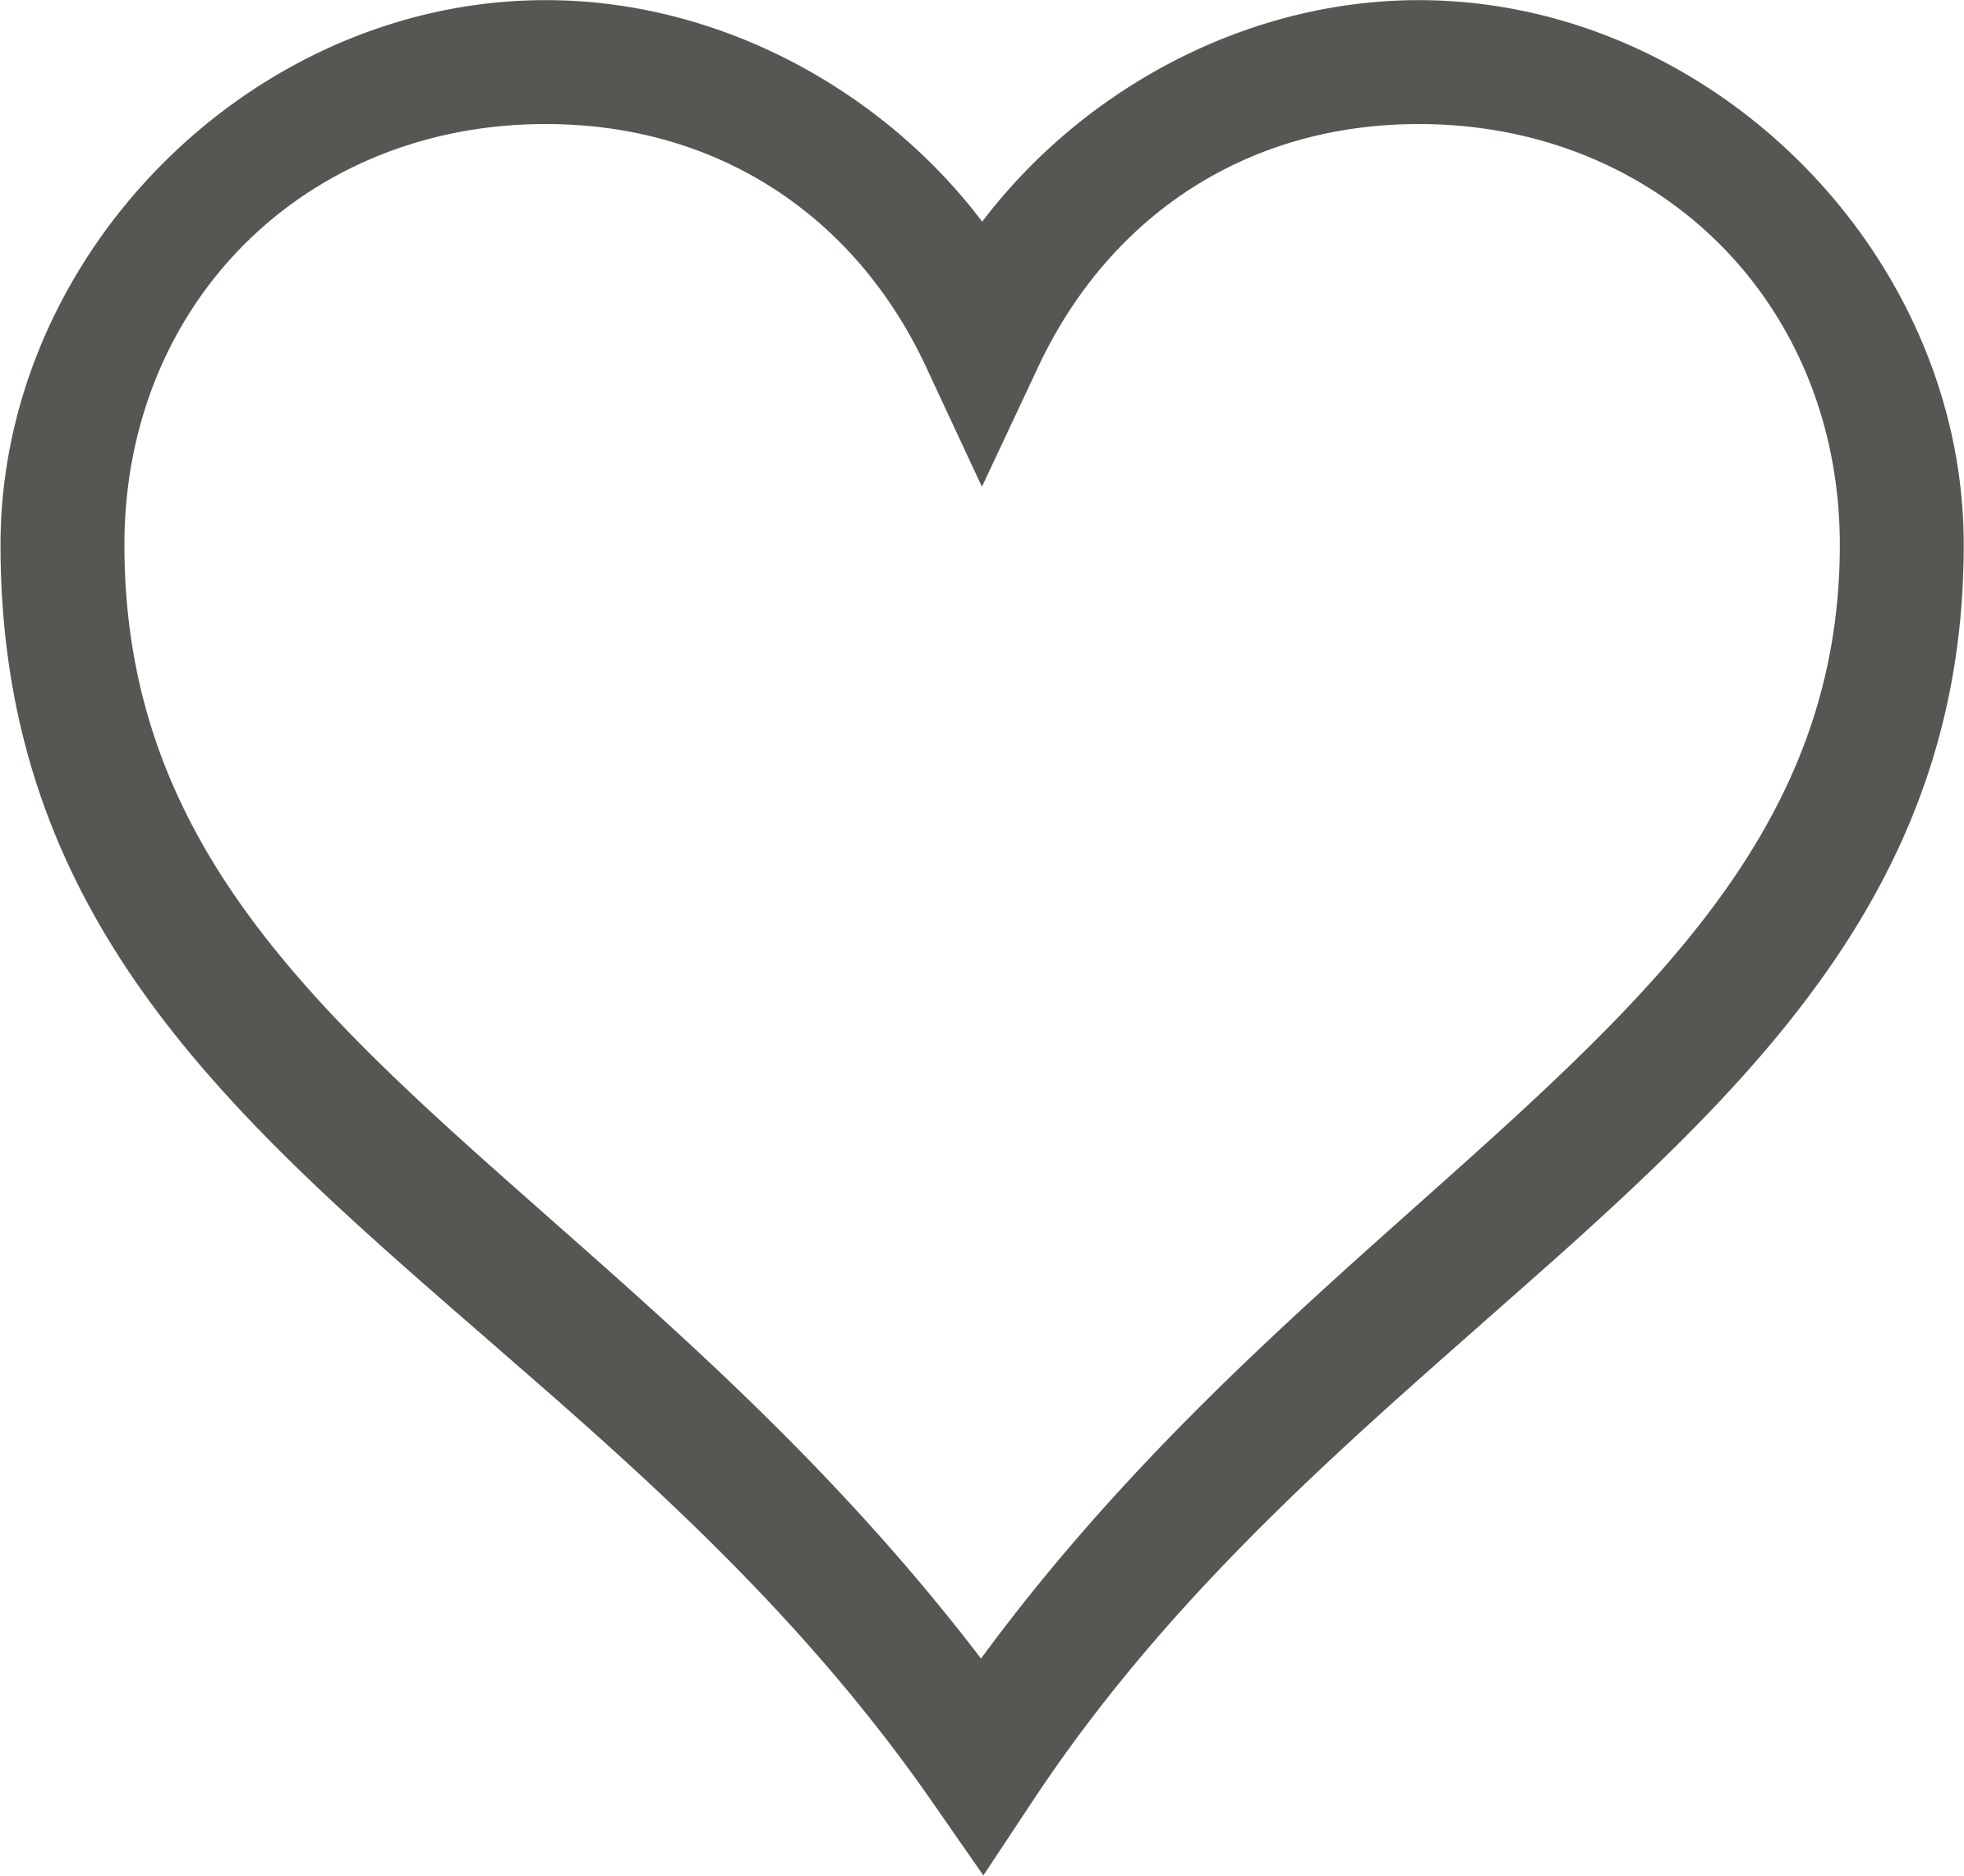 Black Heart Icon Png #346386.